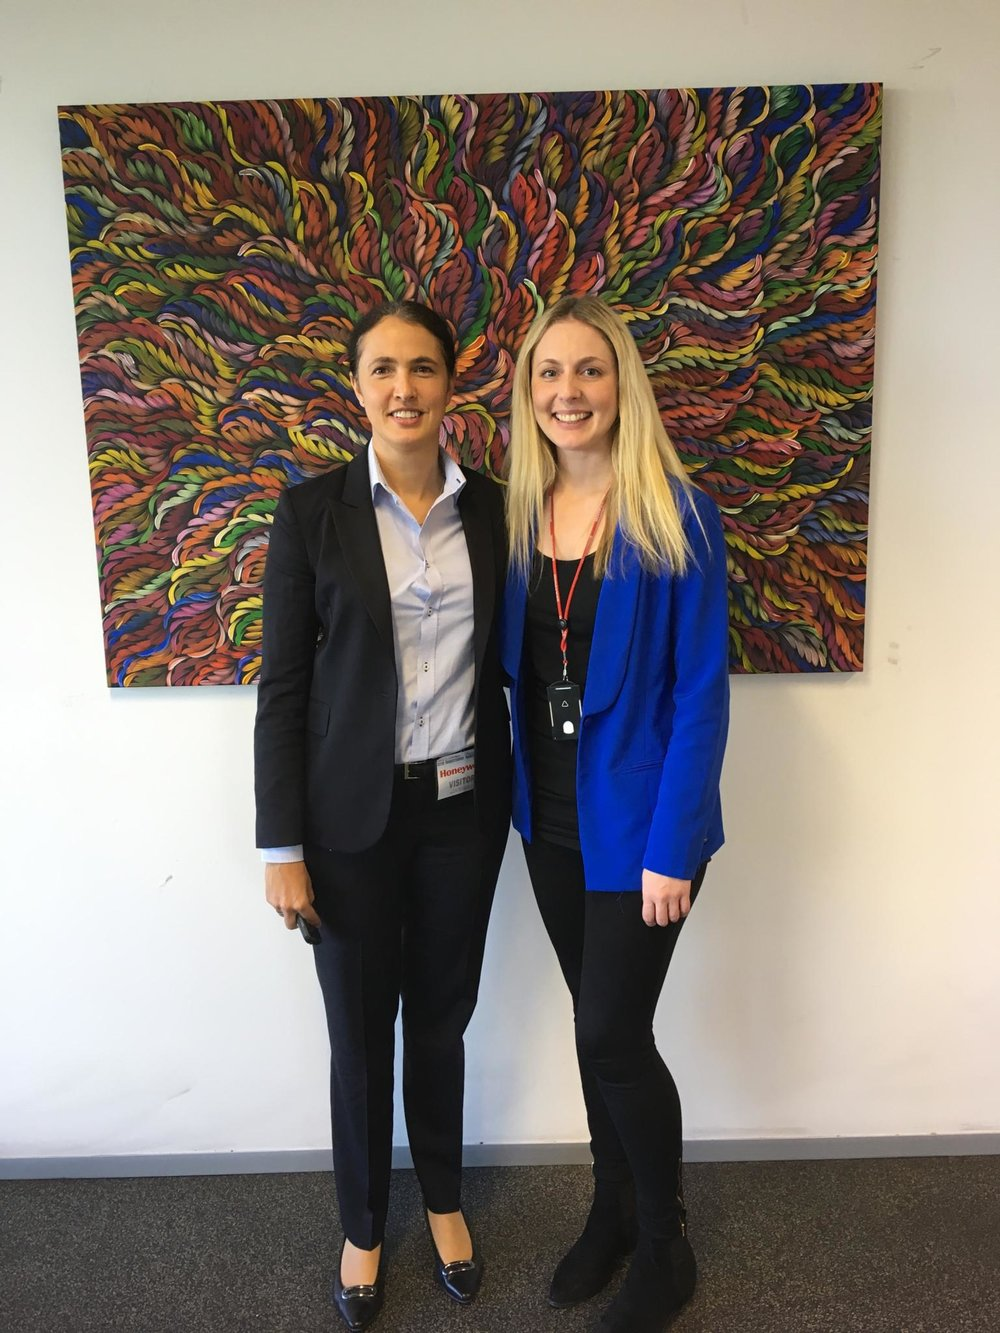 """Launch of Honeywell's RAP in 2017 with fabulous artwork """"Bush Medicine Leaves"""" by Selina Numina purchased by Honeywell for their RAP. Honeywell bought similar artworks for their offices across Australia."""